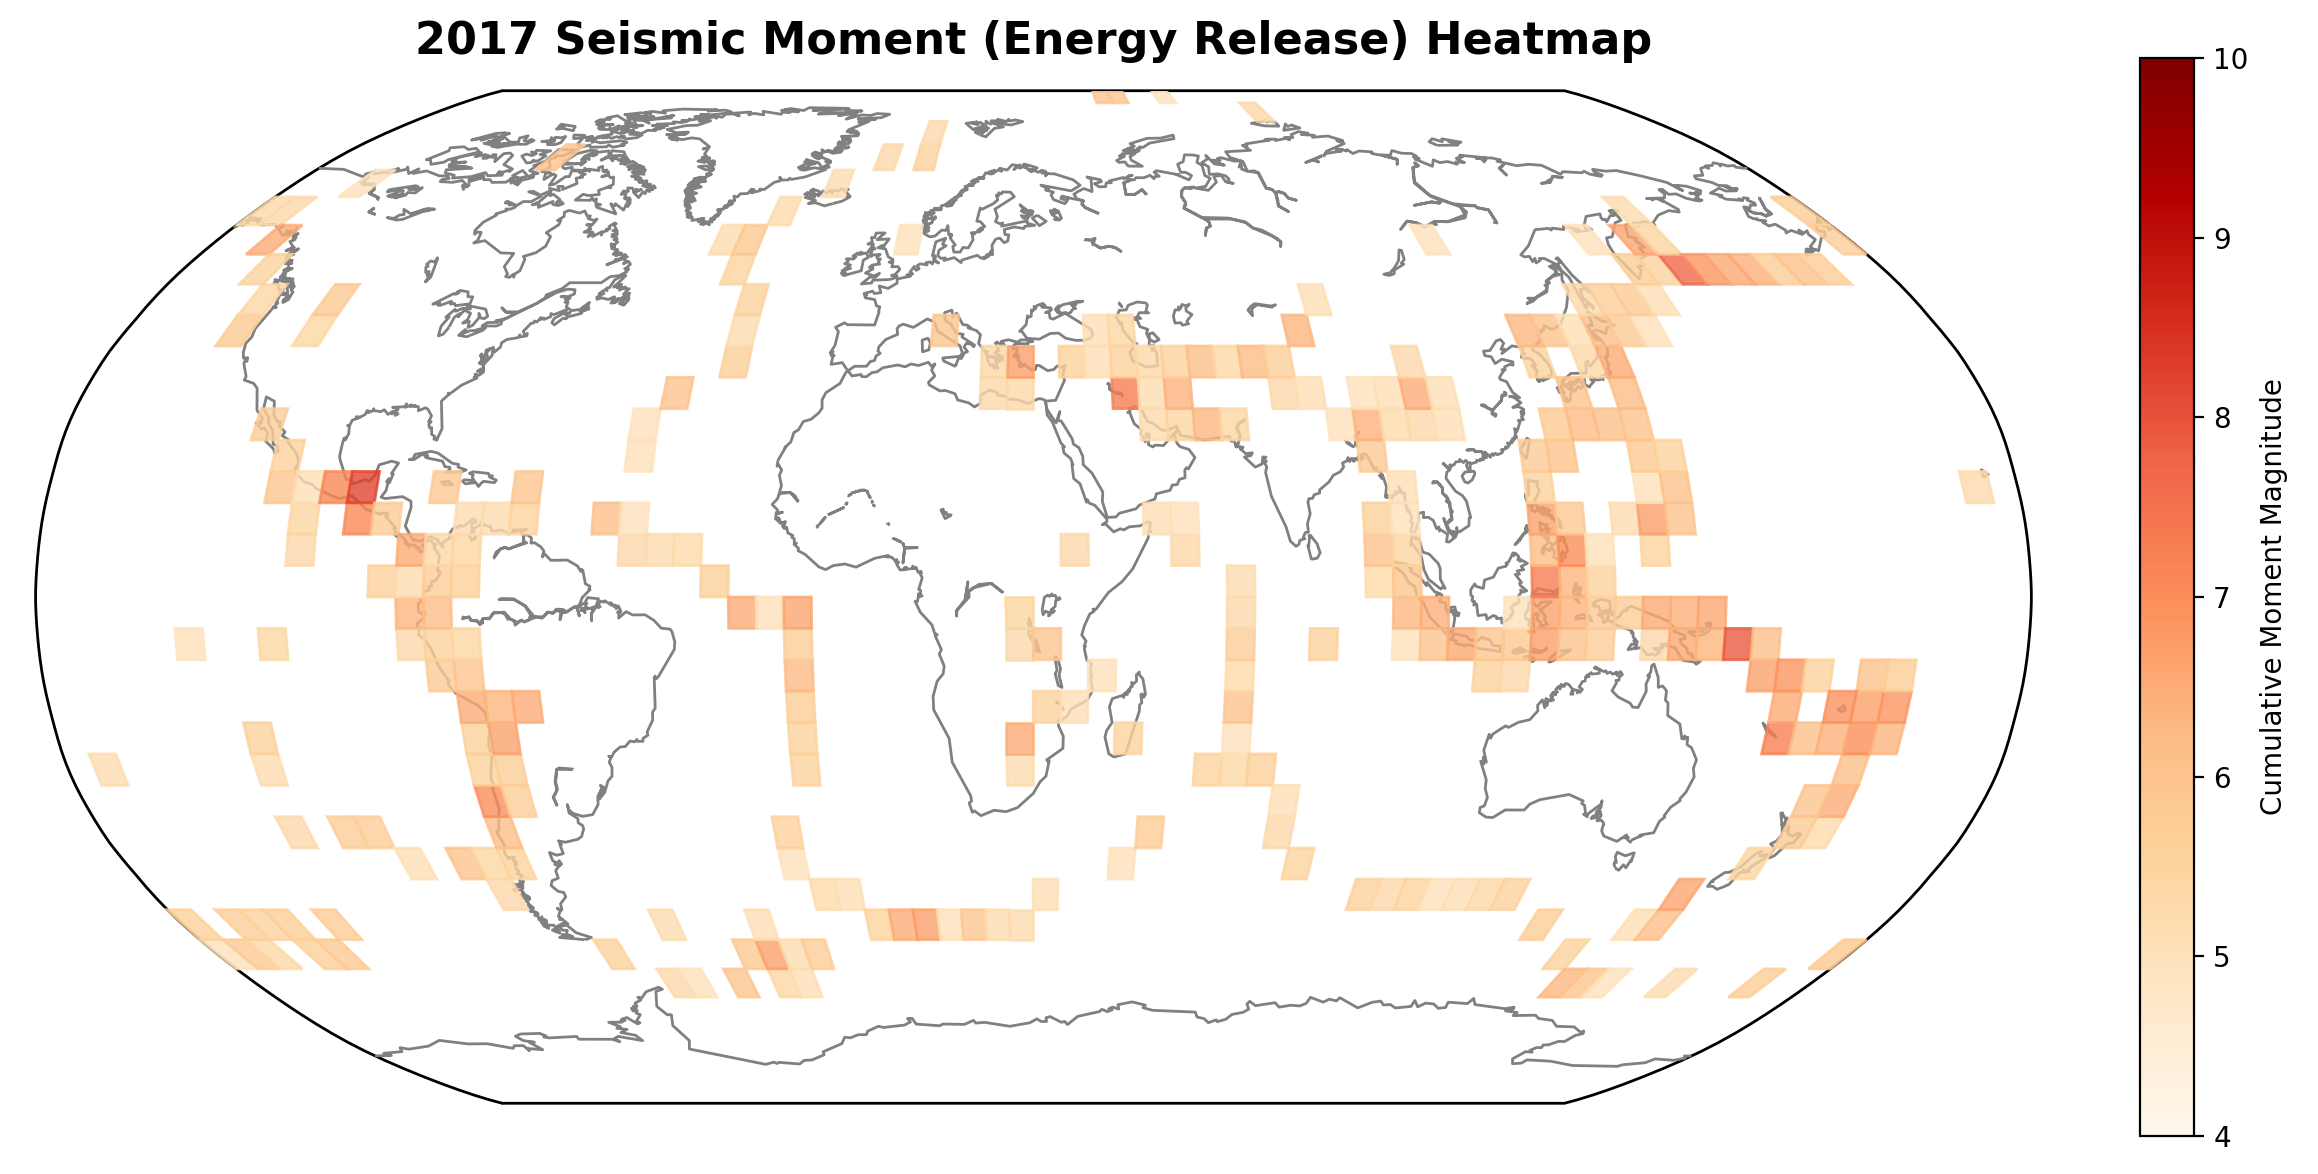 Gridded global map where intensity of colour in each 5 degree grid square represents the total energy released by earthquakes in 2017.